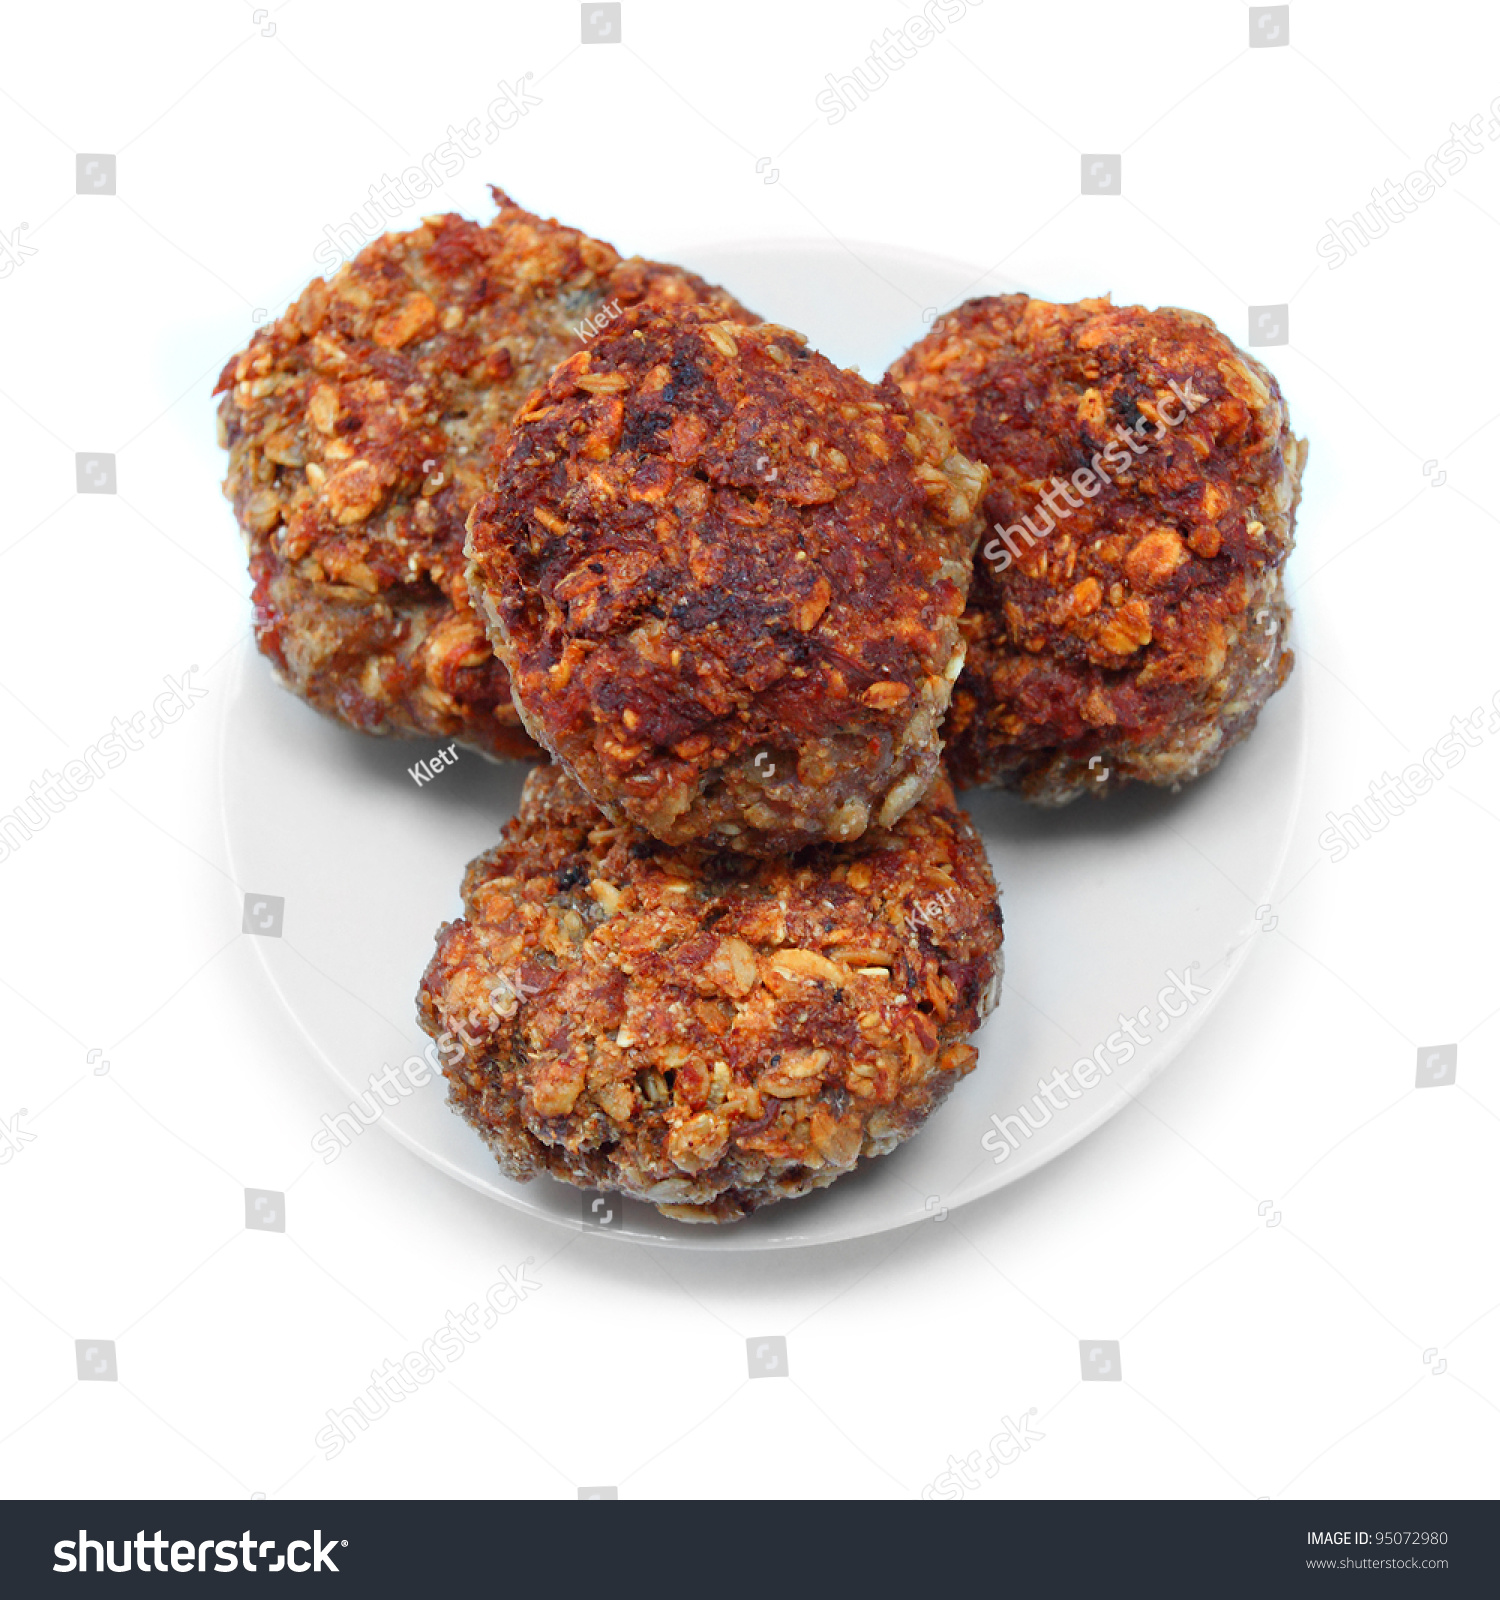 Three Grilled Beef Burgers On A Plate. Stock Photo 95072980 ...